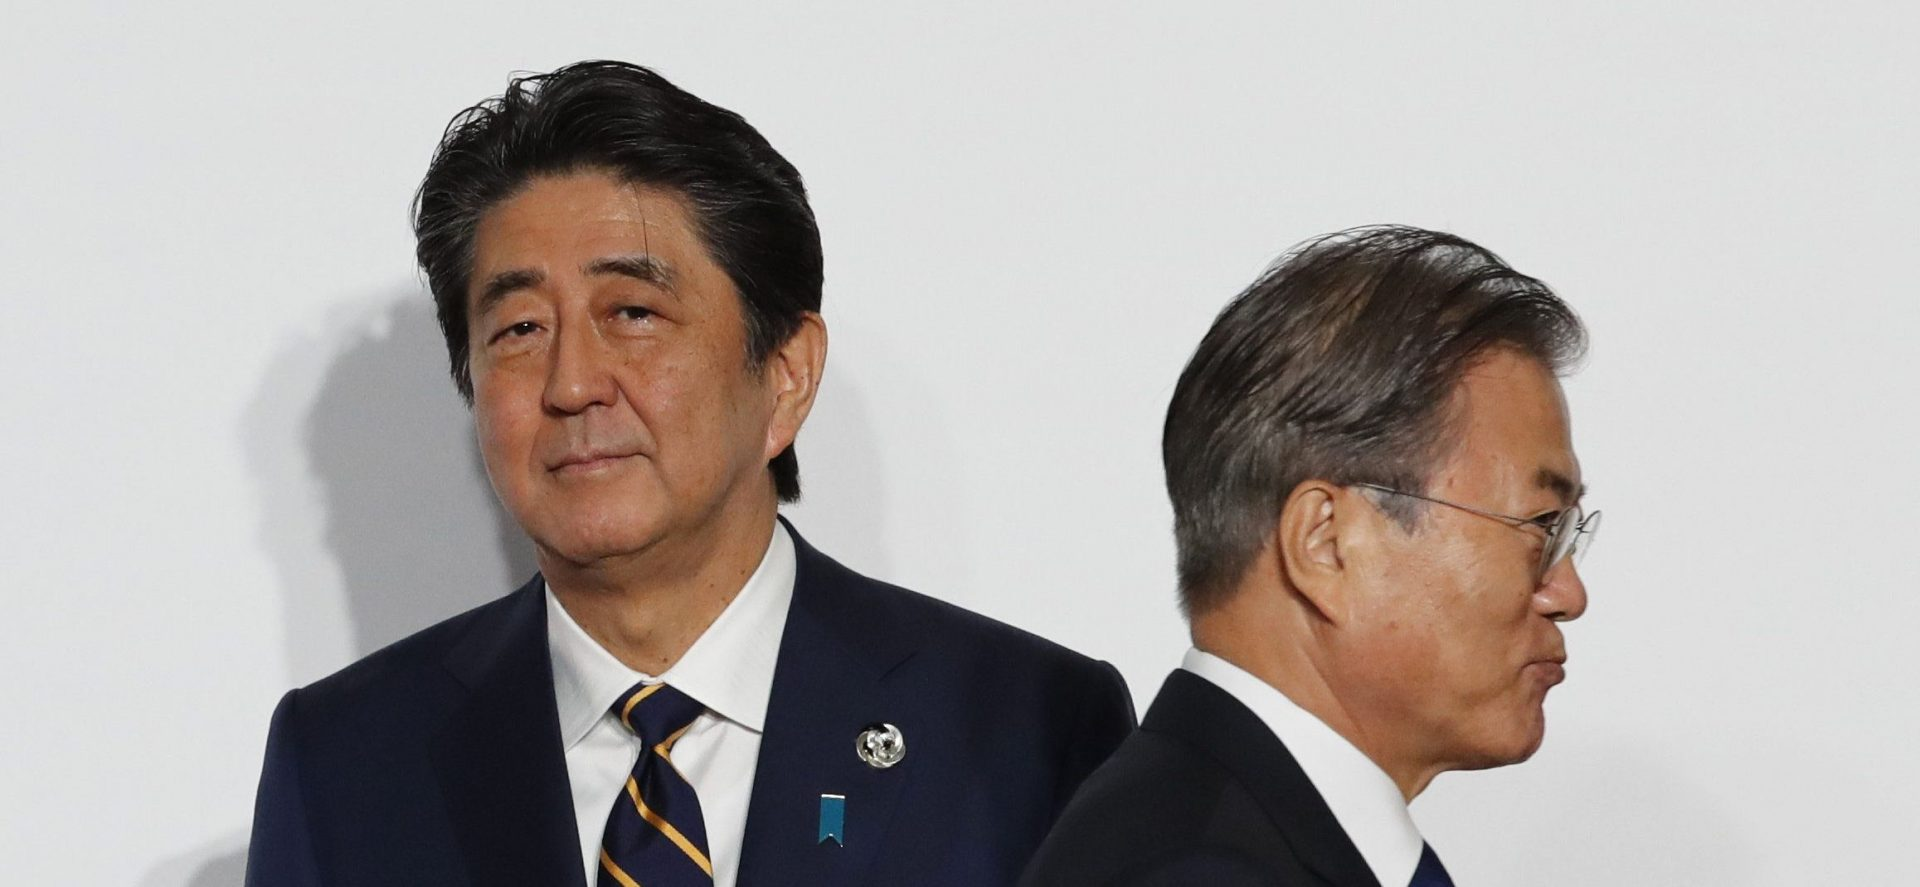 Les tensions commerciales ne cessent d'augmenter entre le Japon de Shinzo Abe et la Corée du Sud de Moon Jae-in. (Source : CNBC)